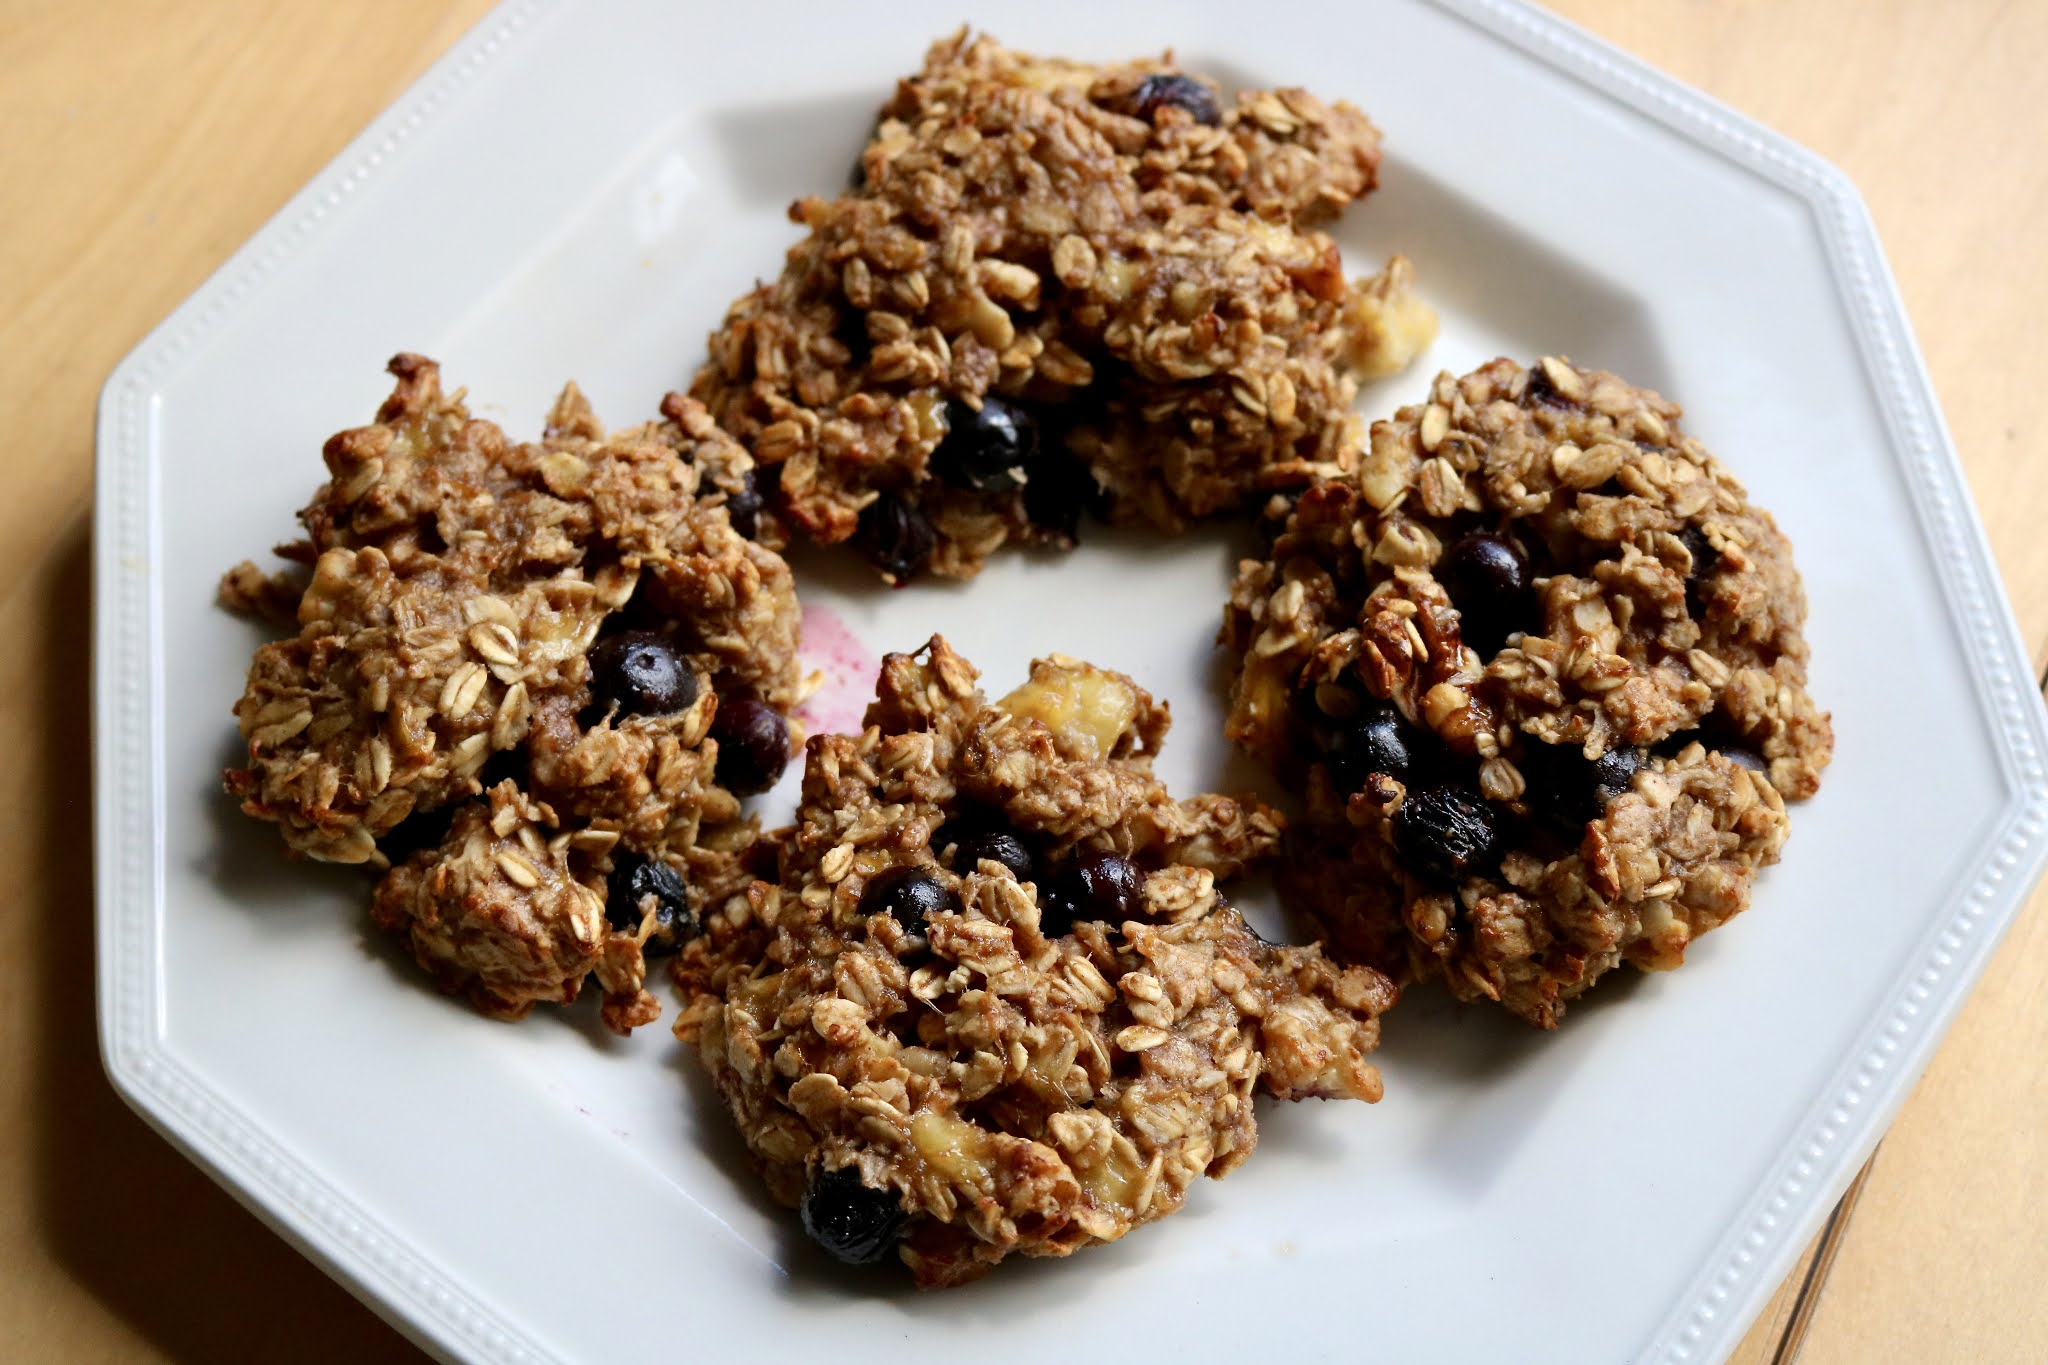 Blueberry Energy Cookies on plate